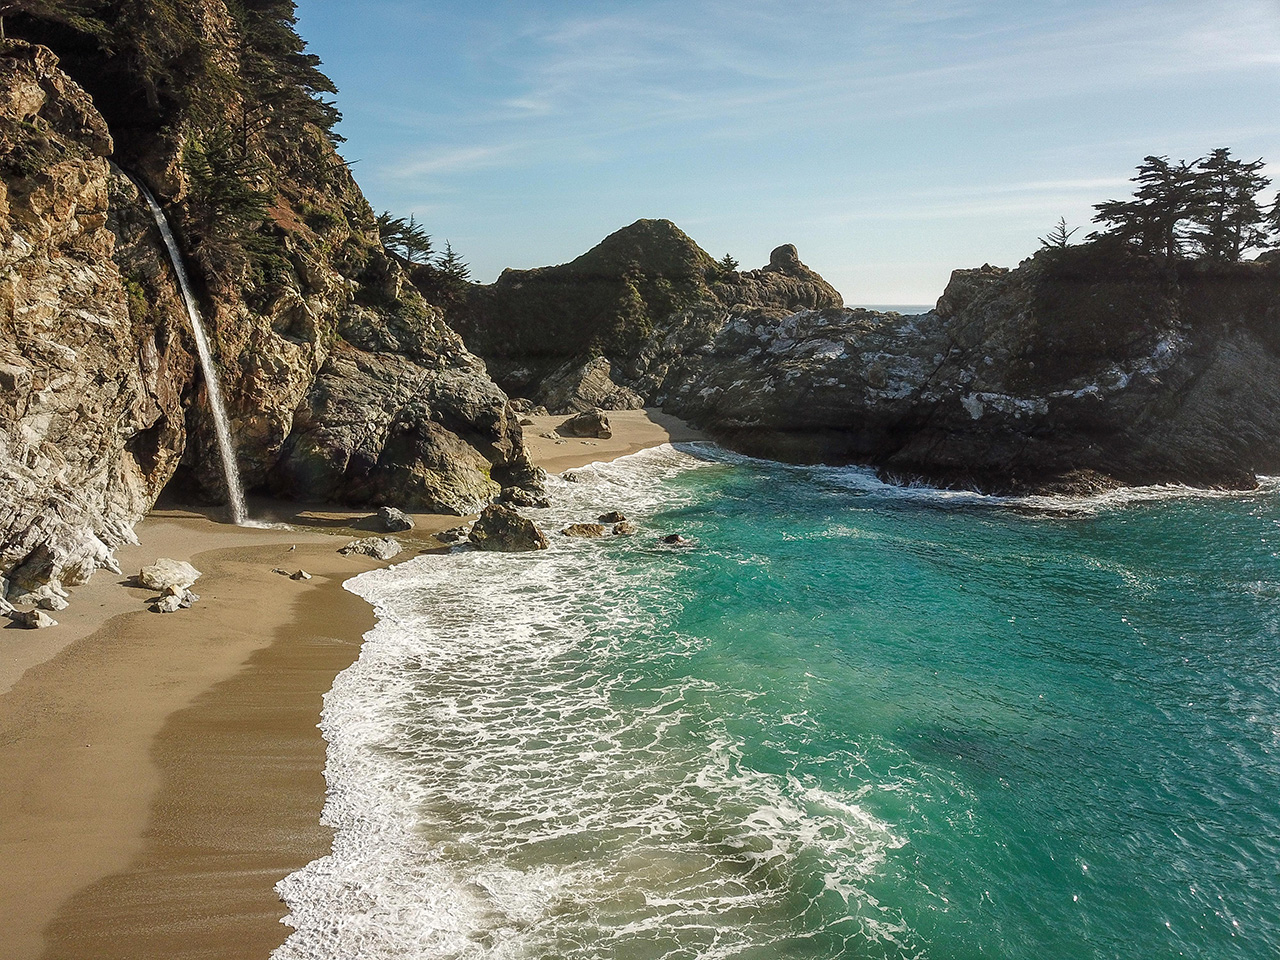 The beauty of McWay Falls.